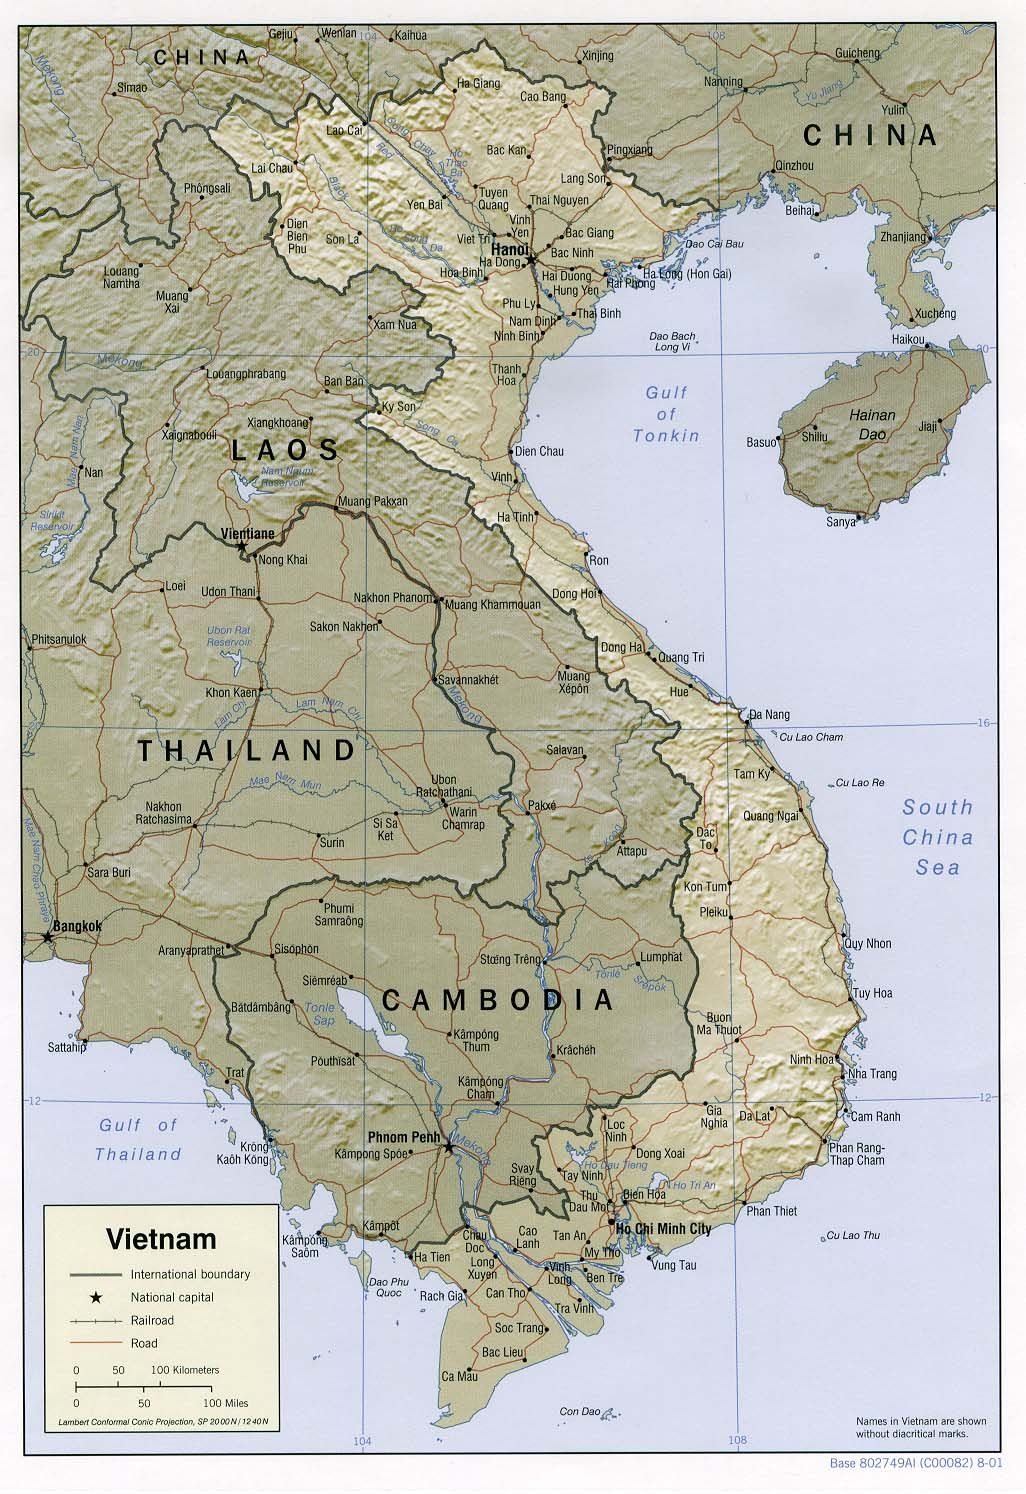 ancient Vietnam tribute nation to China   Google Search | Asian